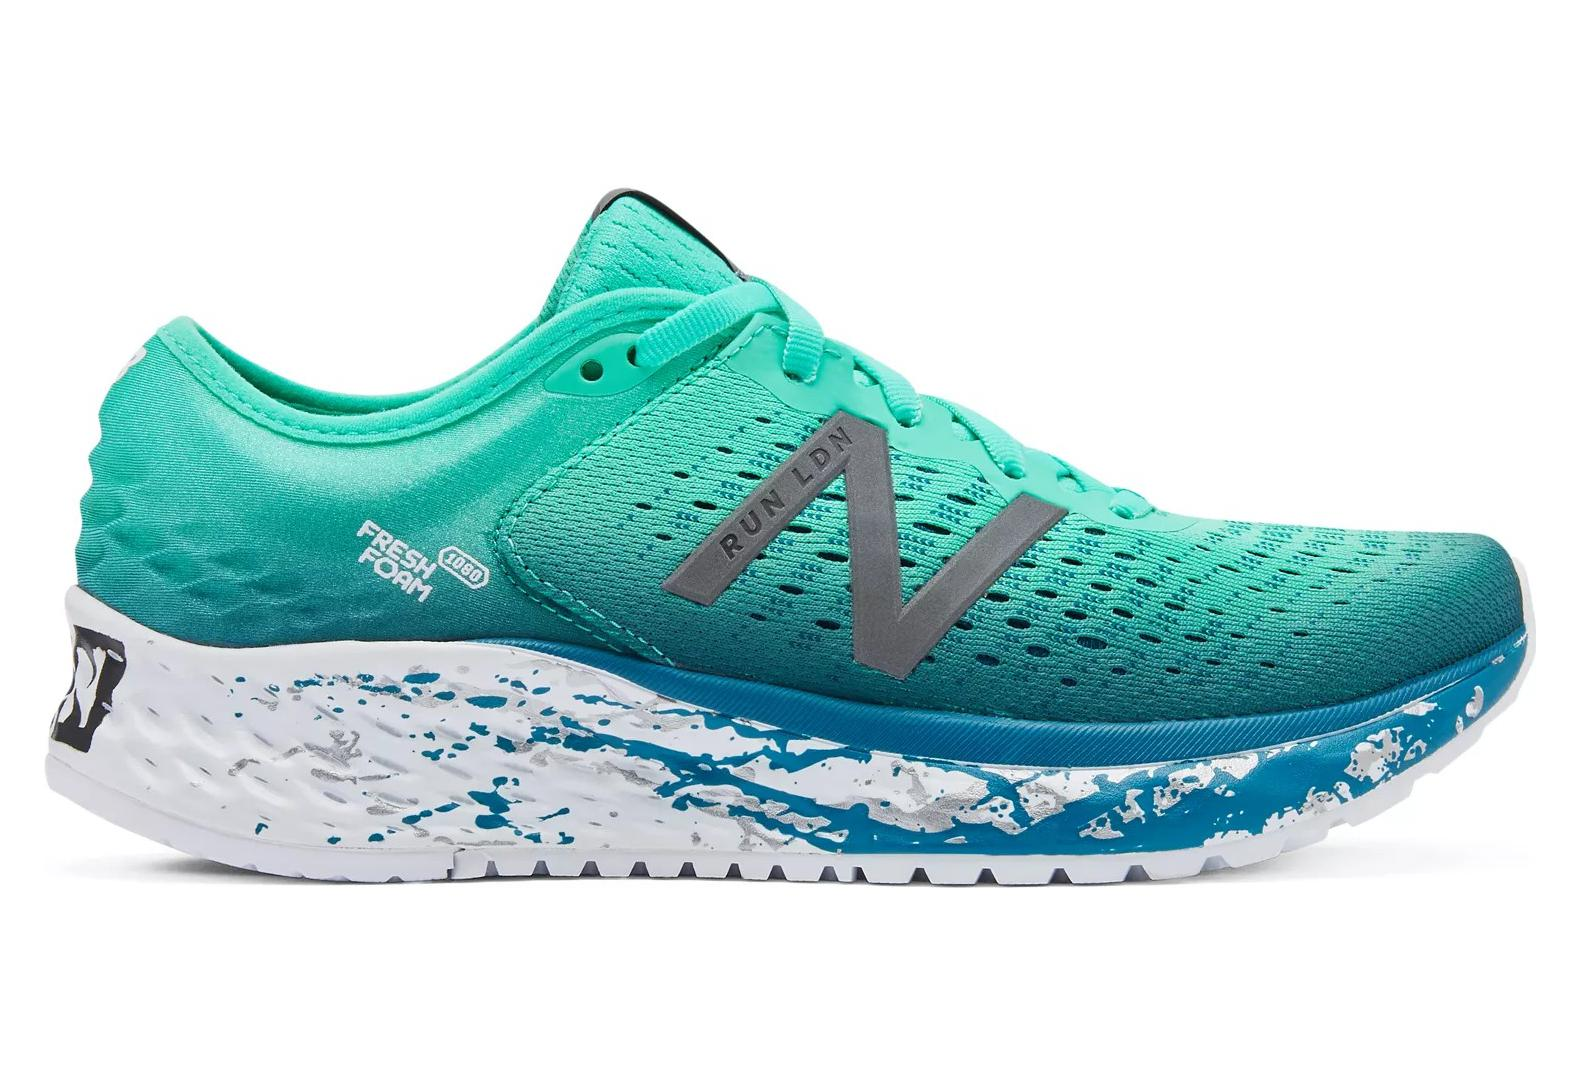 New Balance Fresh Foam 1080 V9 Womens Running Shoes